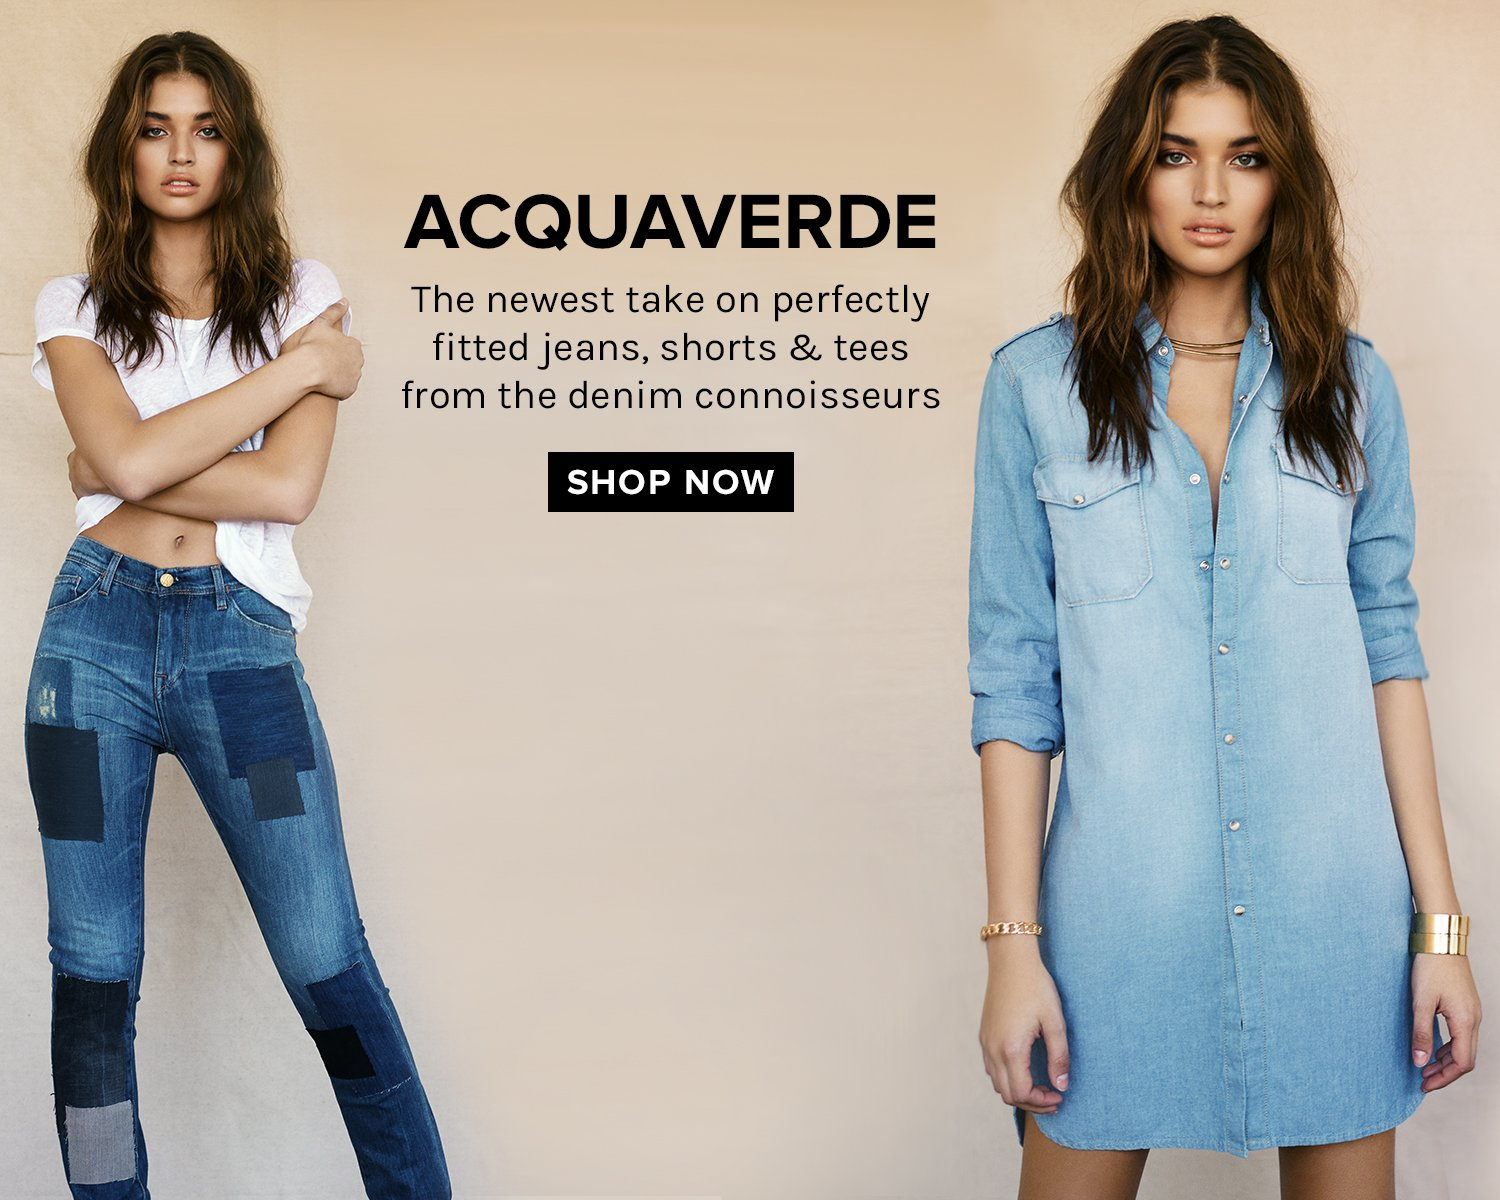 ACQUAVERDE: The newest take on perfectly fitted jeans, shorts & tees from the denim connoisseurs